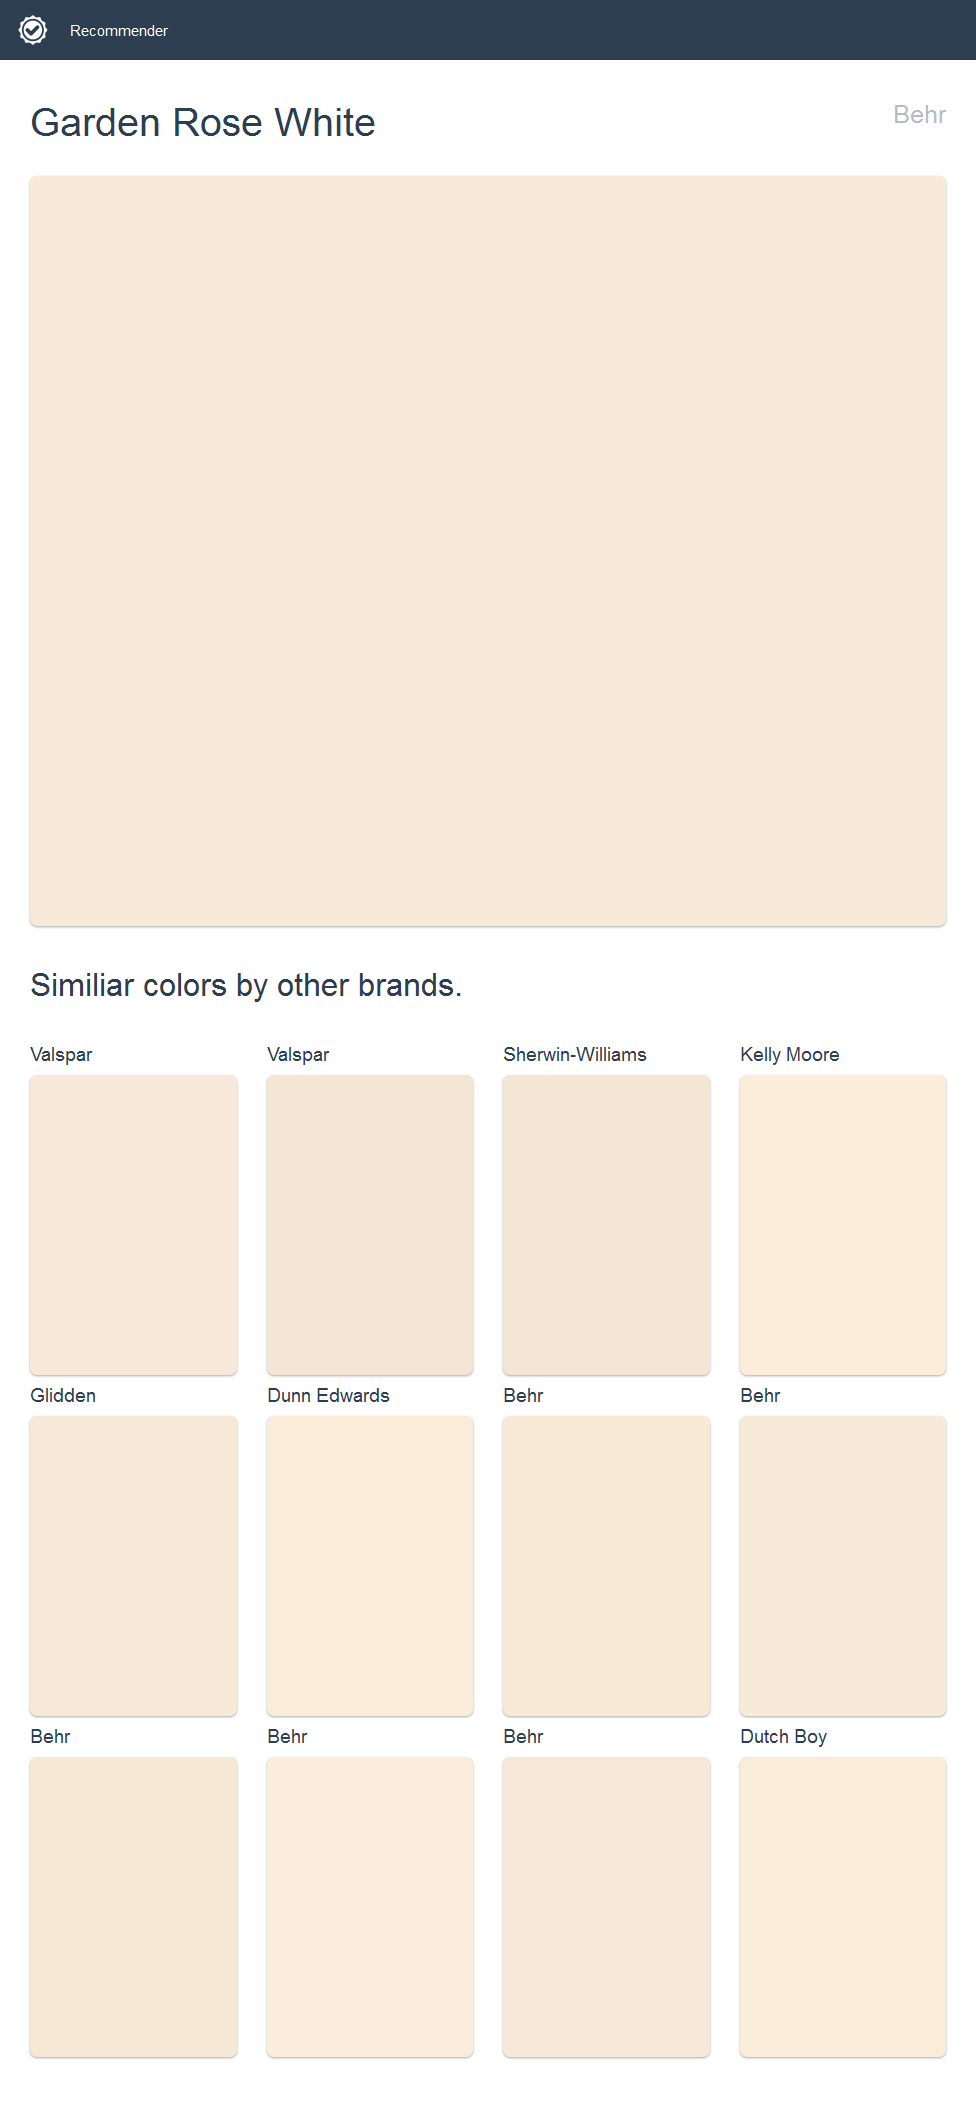 Garden Rose White Behr Click The Image To See Similiar Colors By Other Brands